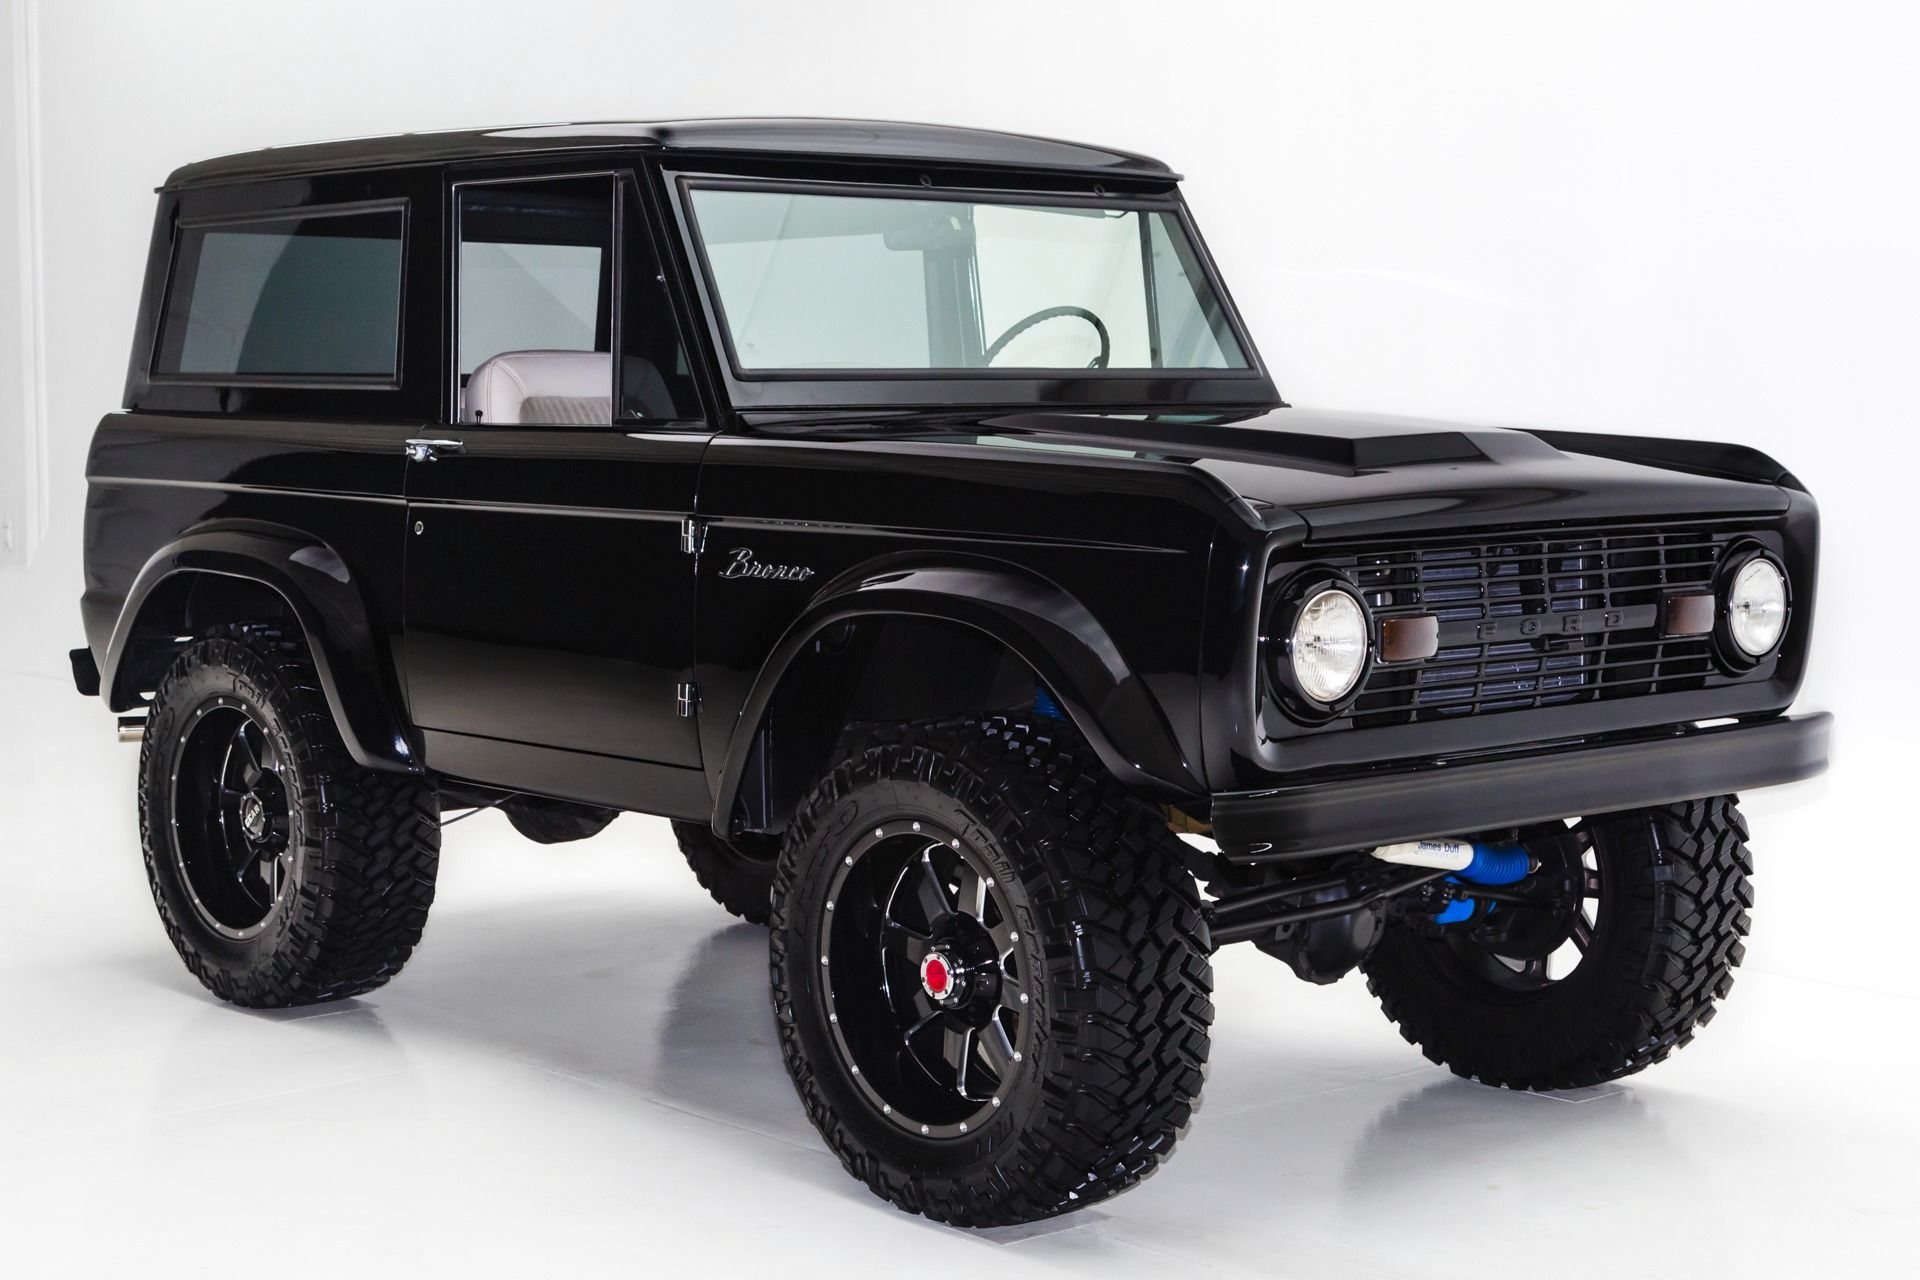 Image Result For Jet Black Ford Bronco Ford Bronco Bronco Car